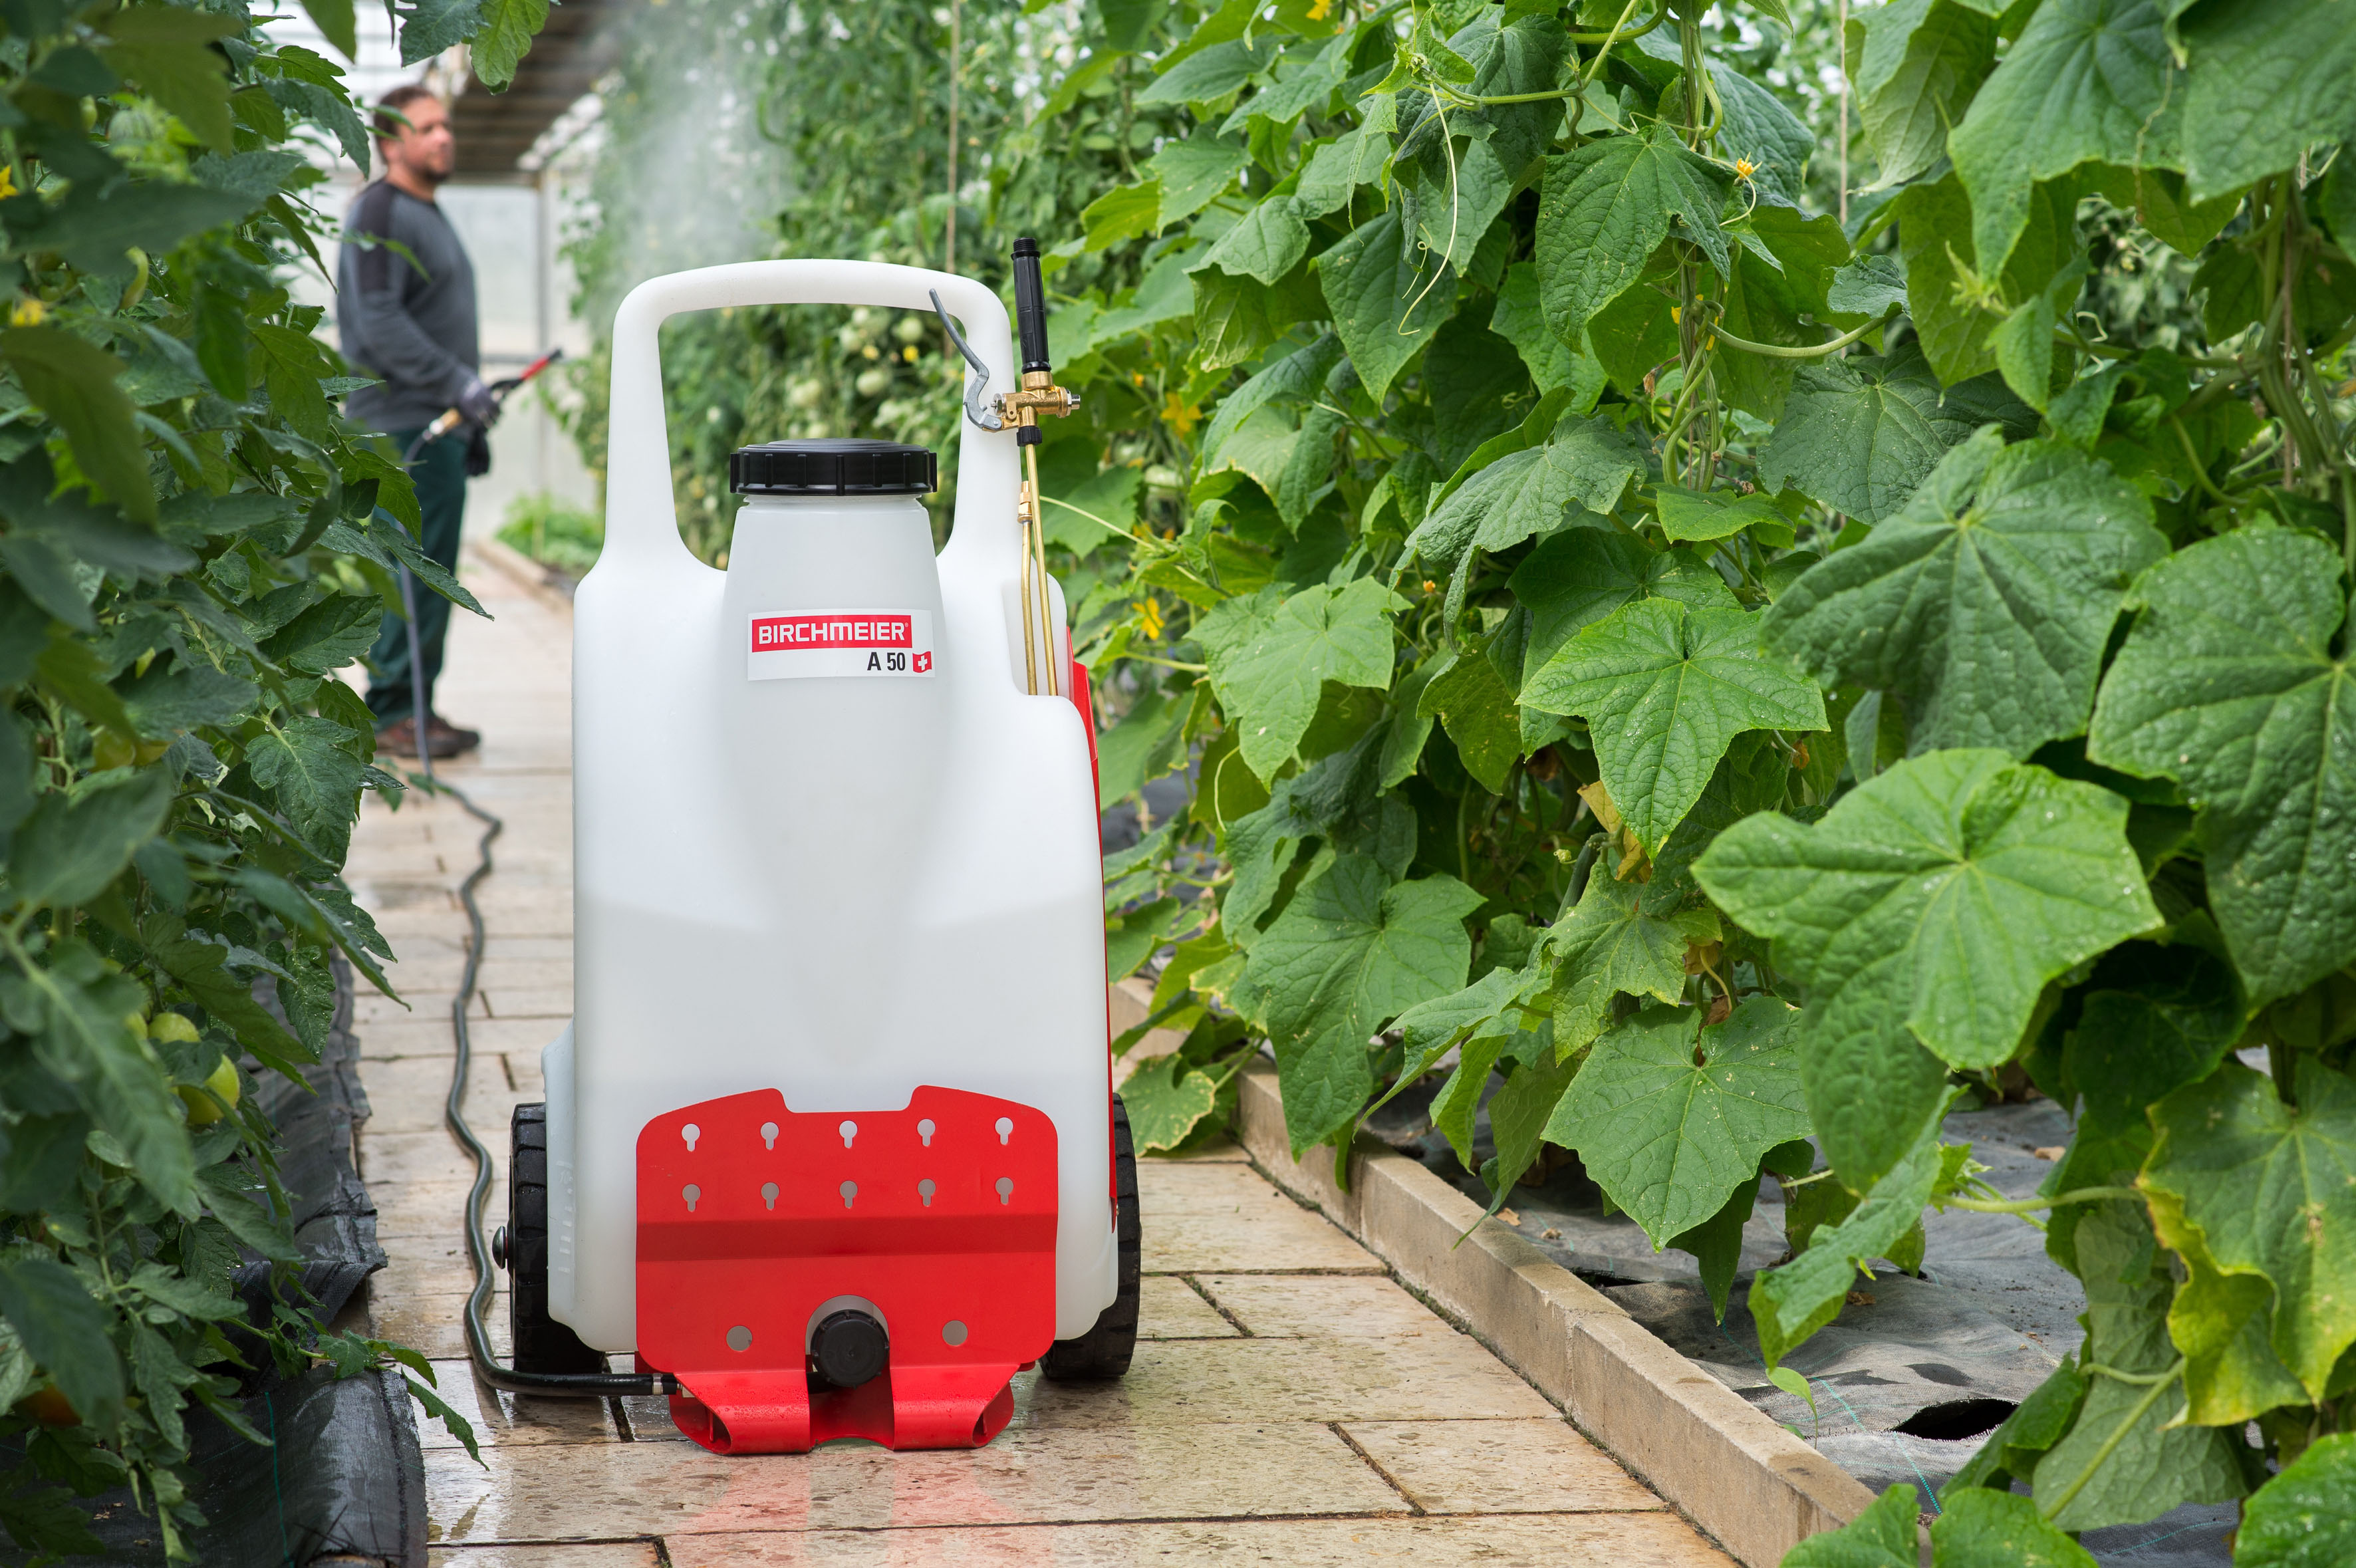 The New Two Wheel Battery Operated Sprayer Electronic Pressure Control Ful Quiet And Environmentally Friendly